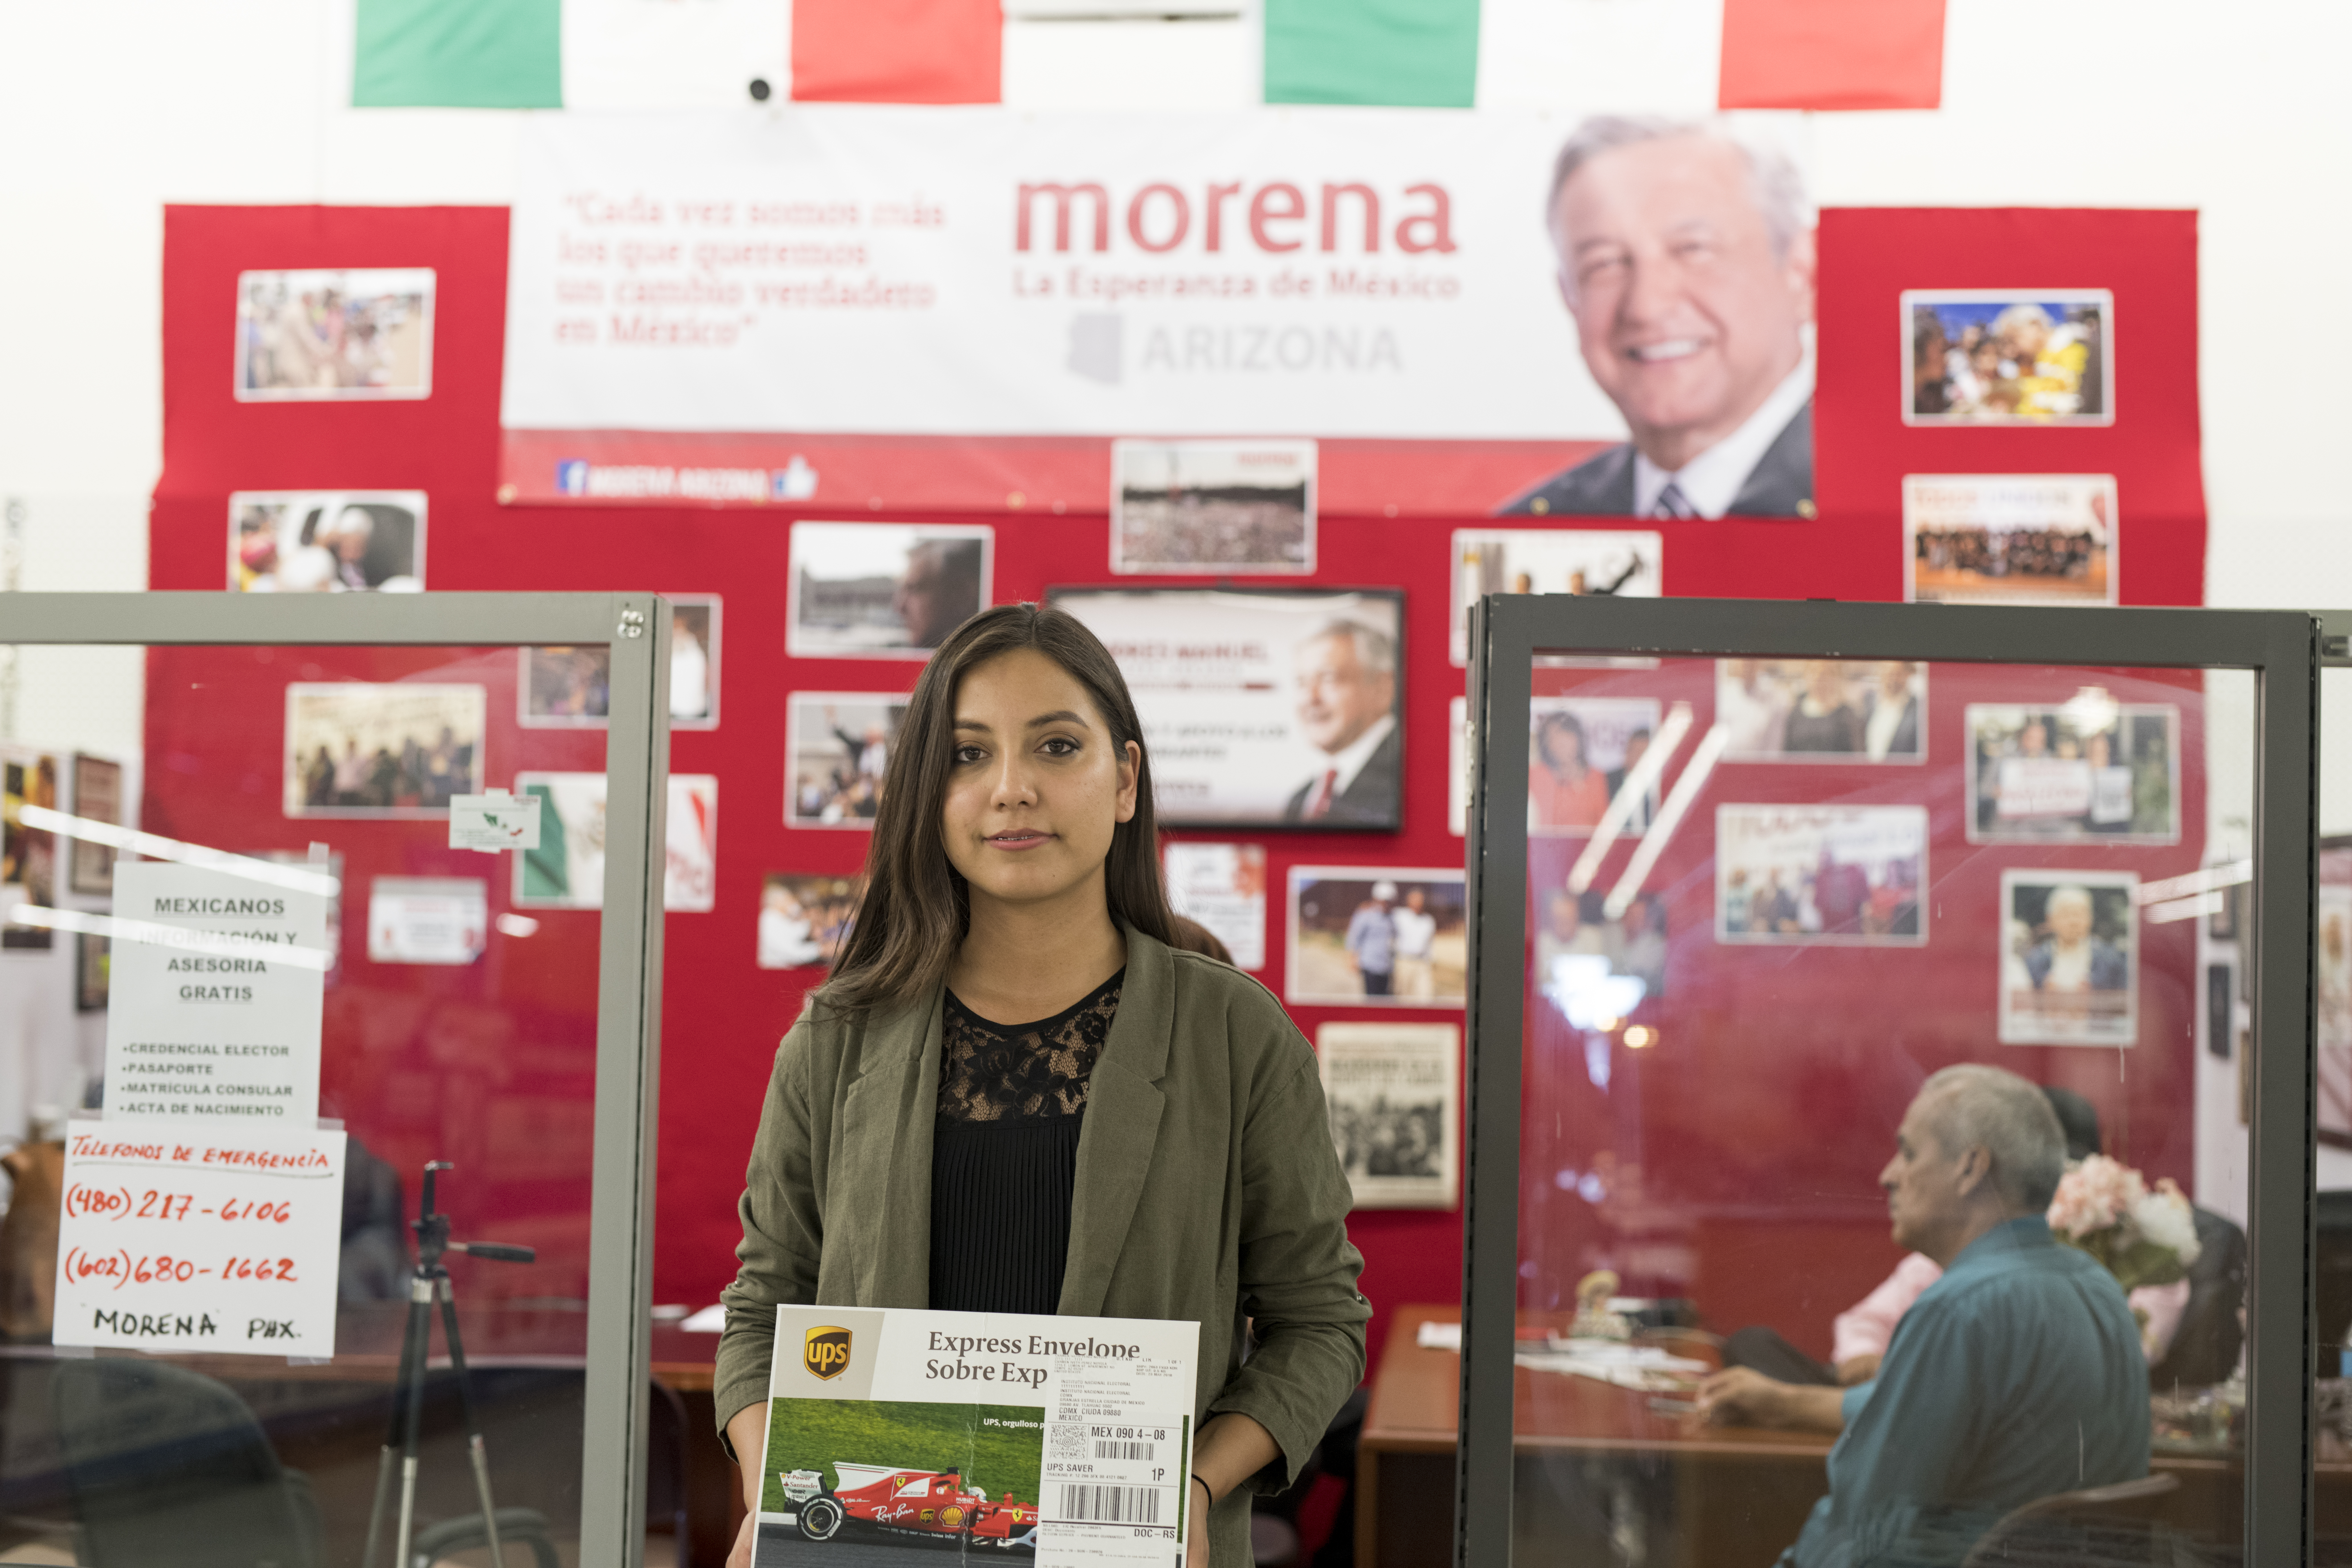 Carmen Pérez Noyola, holding an envelope, prepares to mail in her ballot from Phoenix for the July 1 presidential election in Mexico.